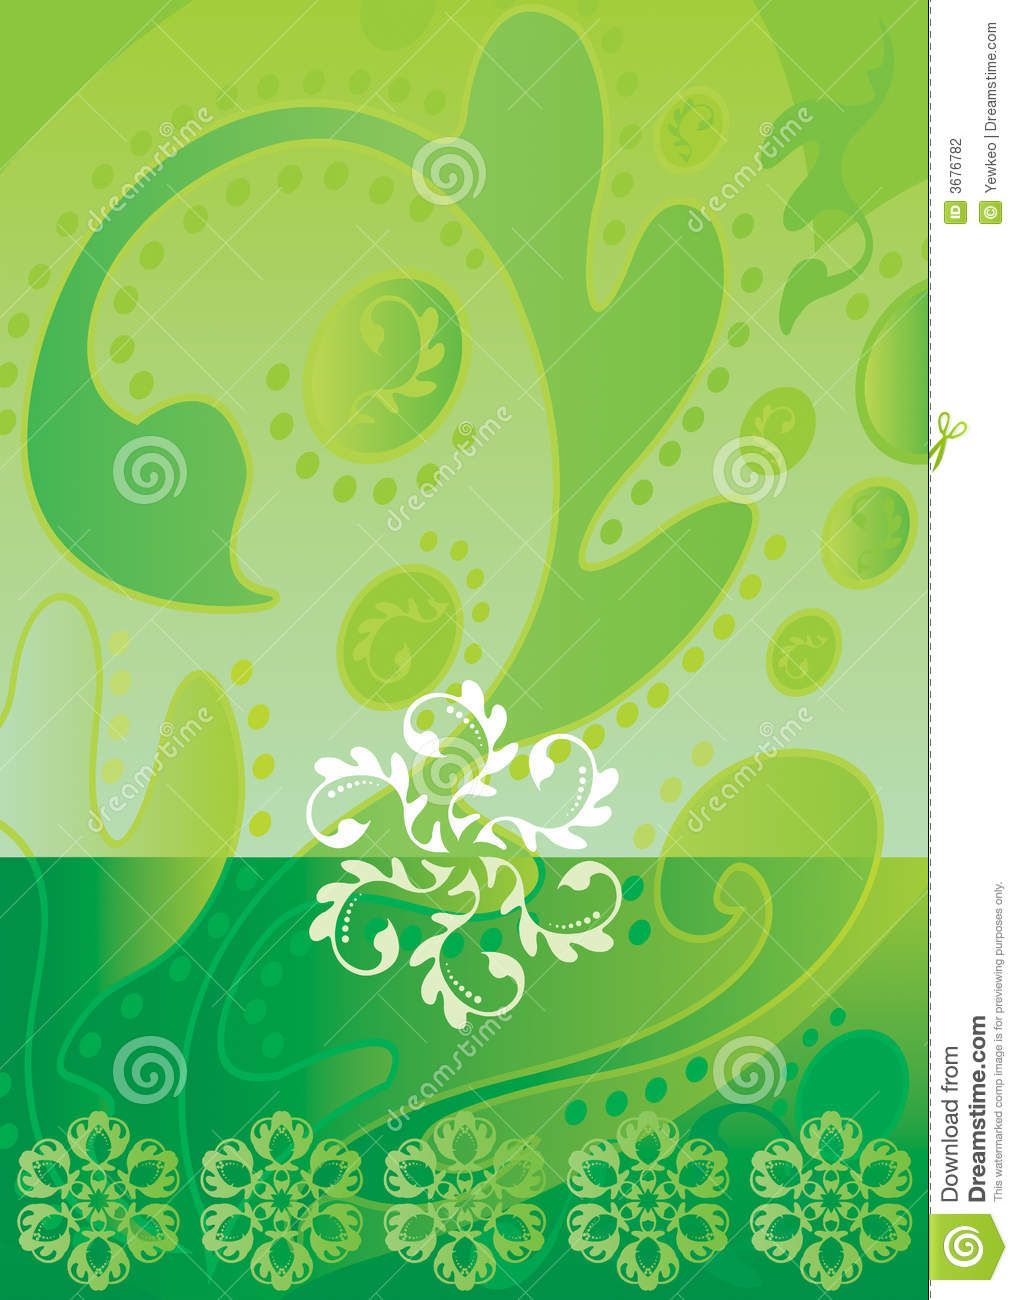 Download Batik_green illustrazione vettoriale. Illustrazione di artistico - 3676782